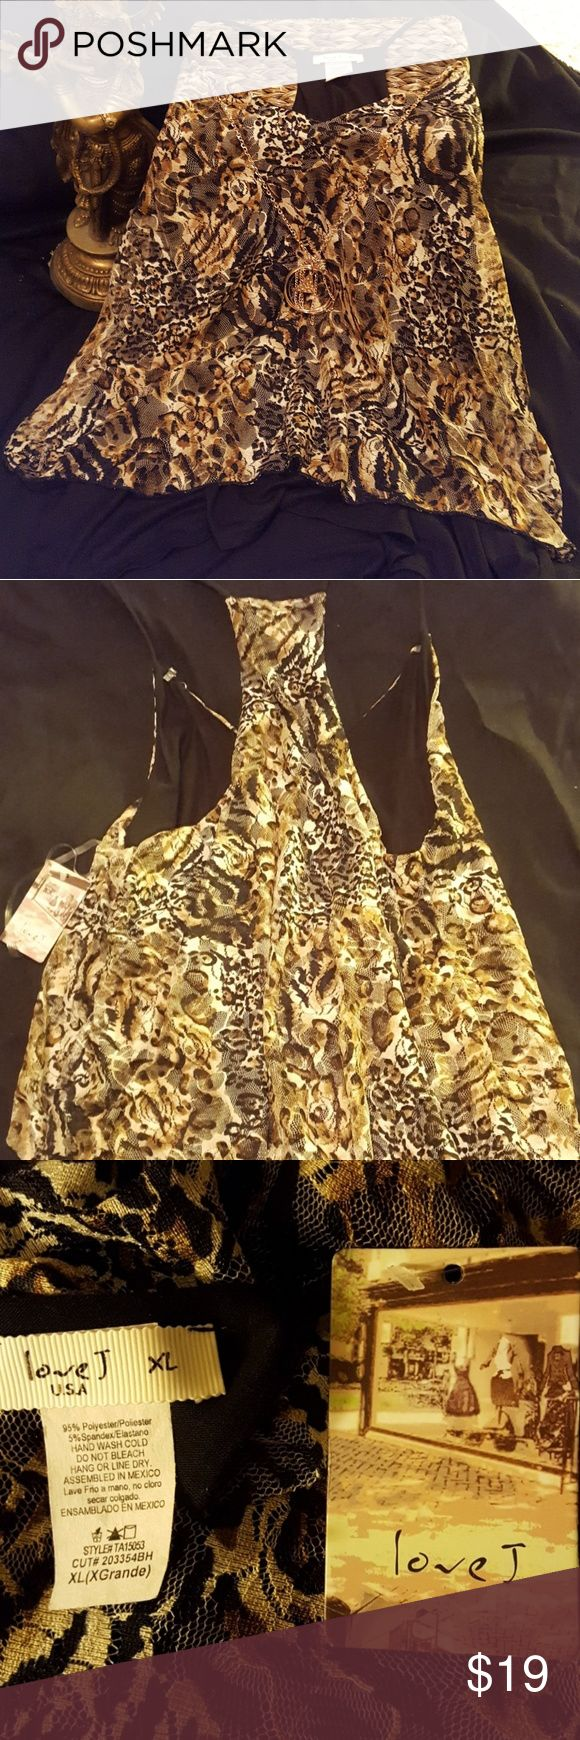 NWT Strappy Top Flowy animal print top Lightweight and flattering Tops